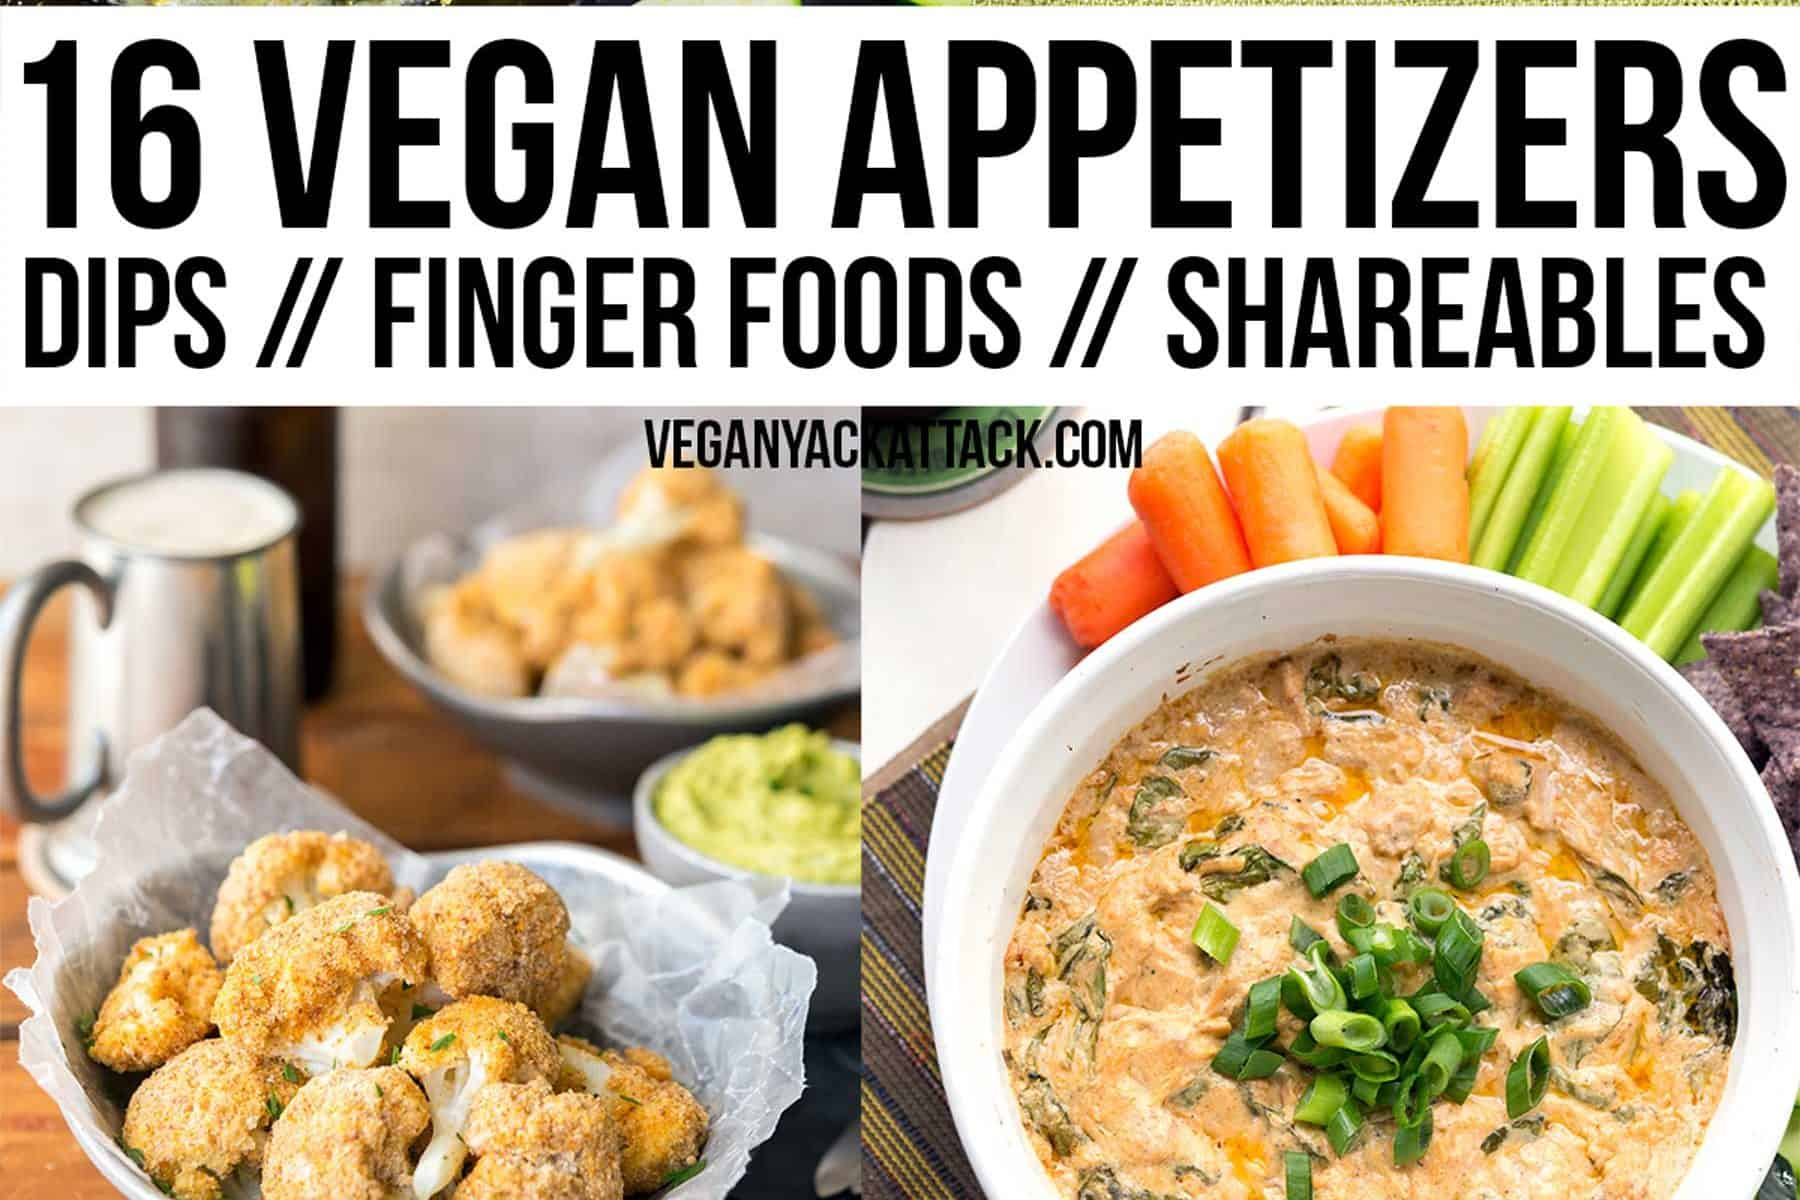 16 Vegan Appetizers